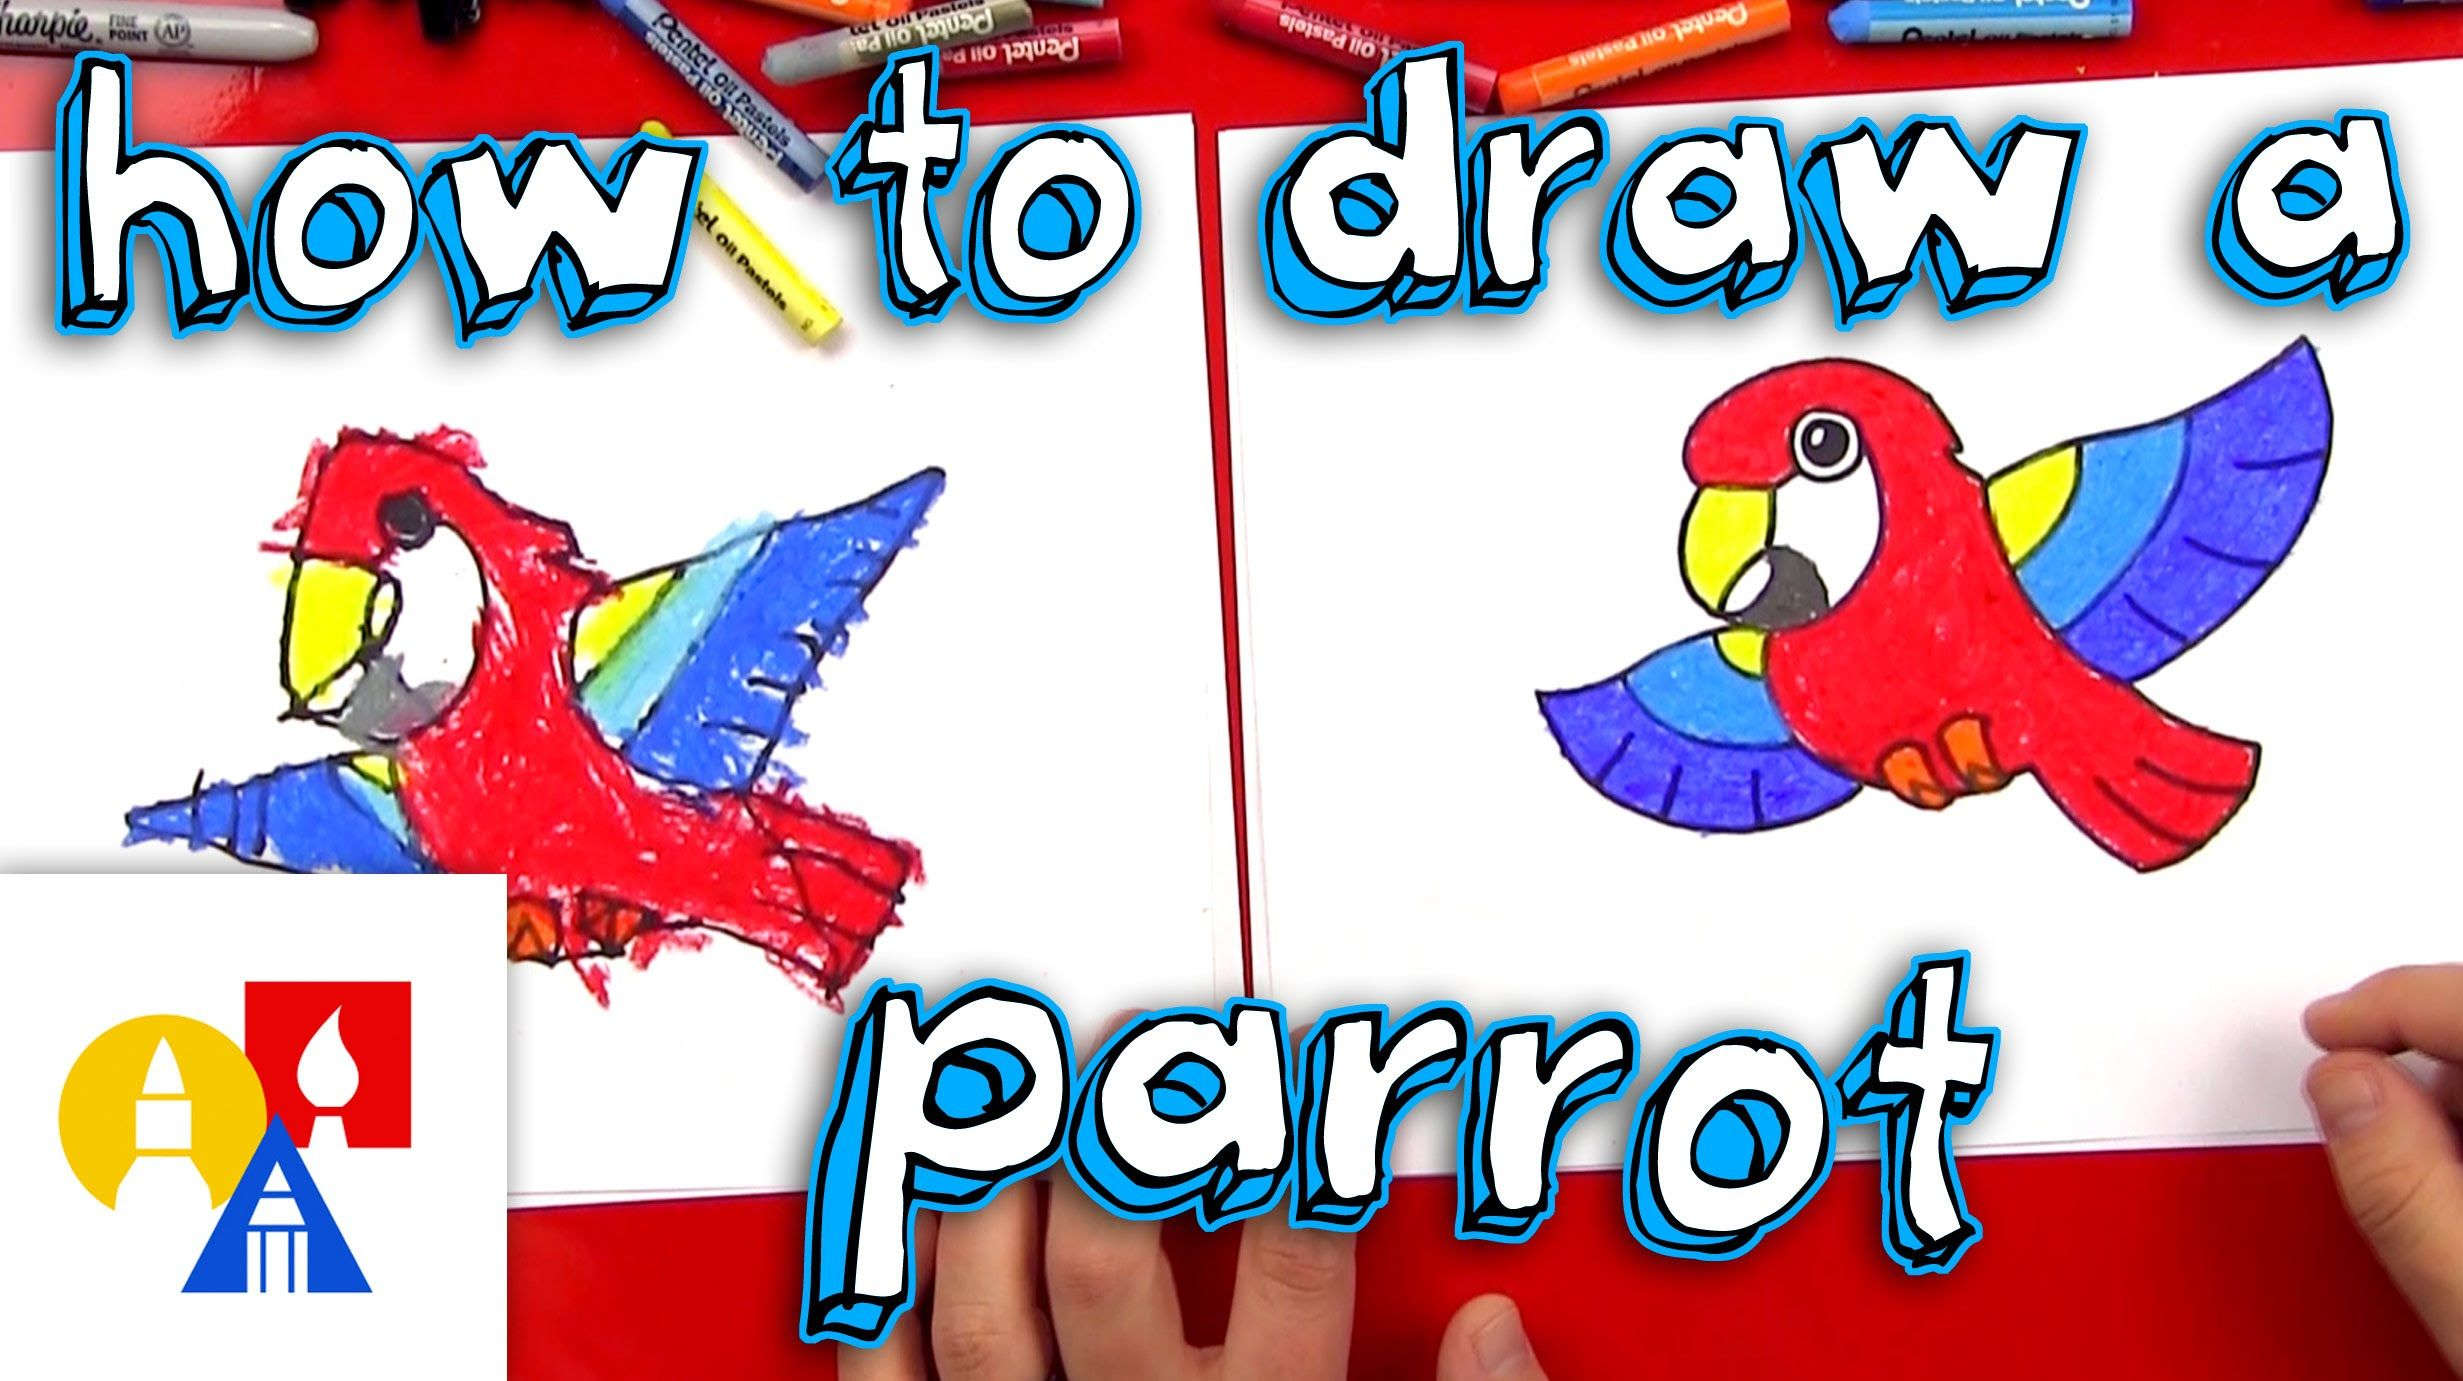 Learn How To Draw A Cartoon Parrot This Activity Is Meant For Younger Artists We Tried To Keep This Lesson Art For Kids Hub Parrots Art Art Lessons For Kids